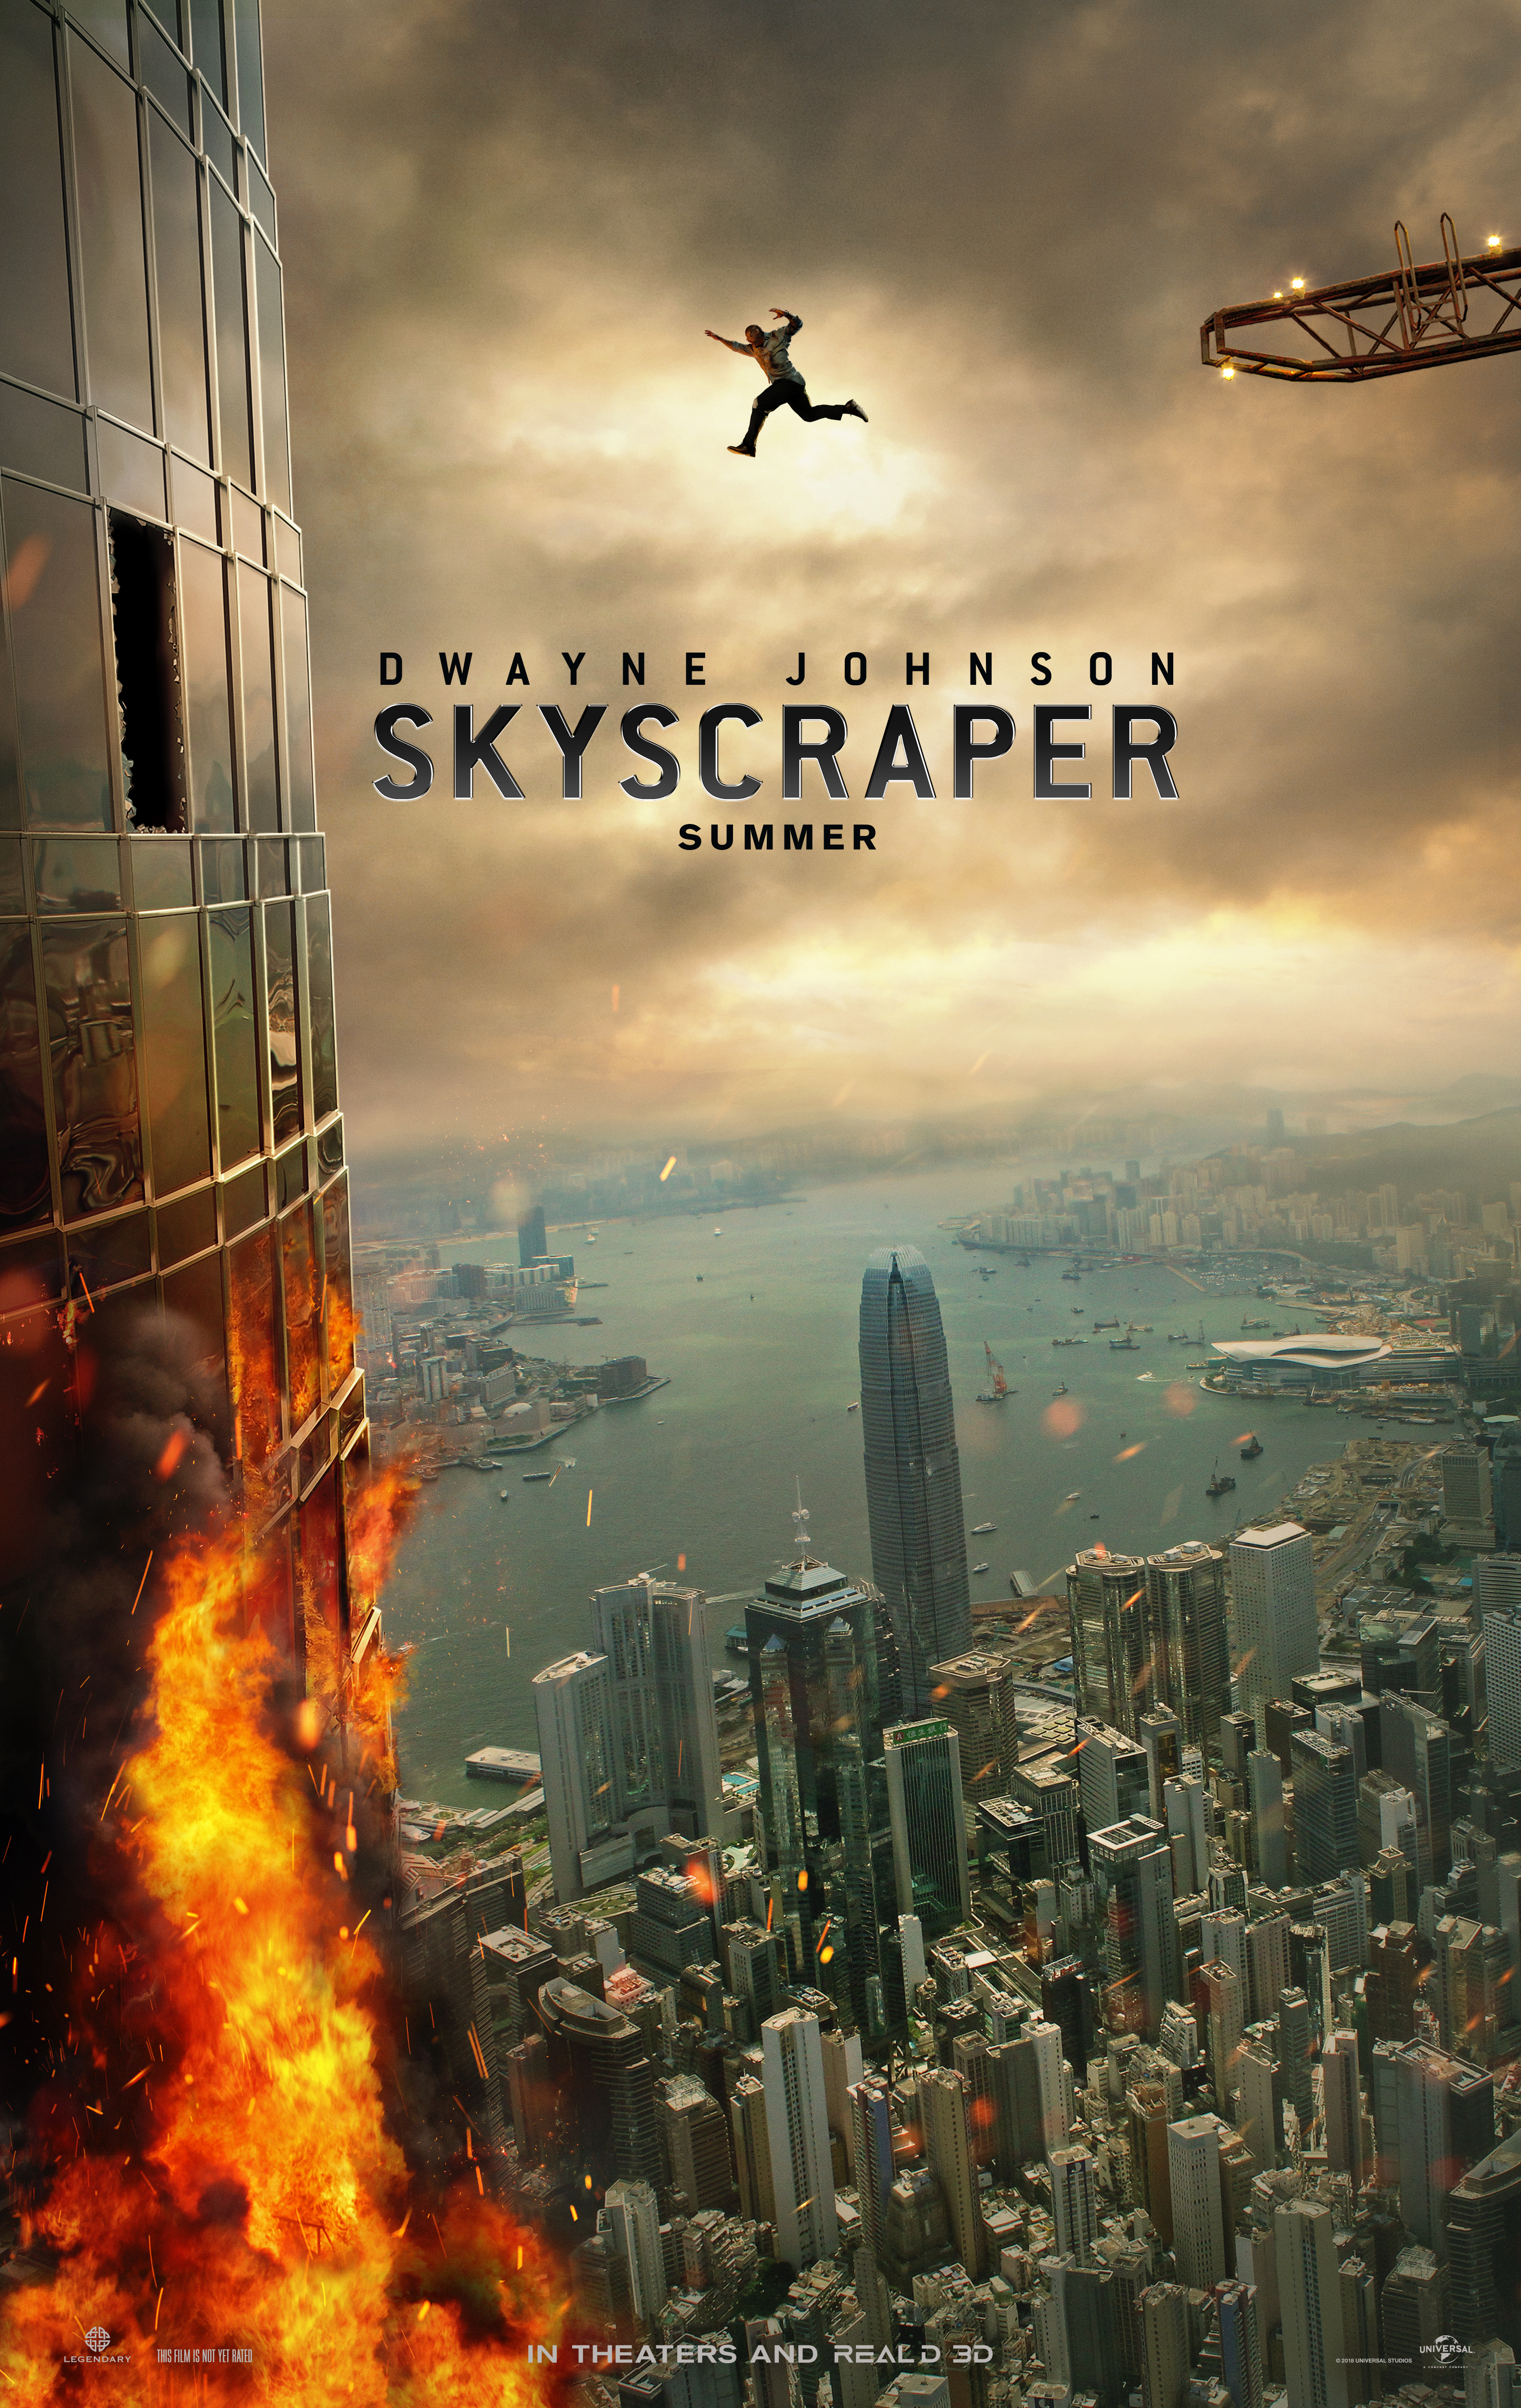 The Rock's 'Skyscraper' Movie: Is That a Real Building